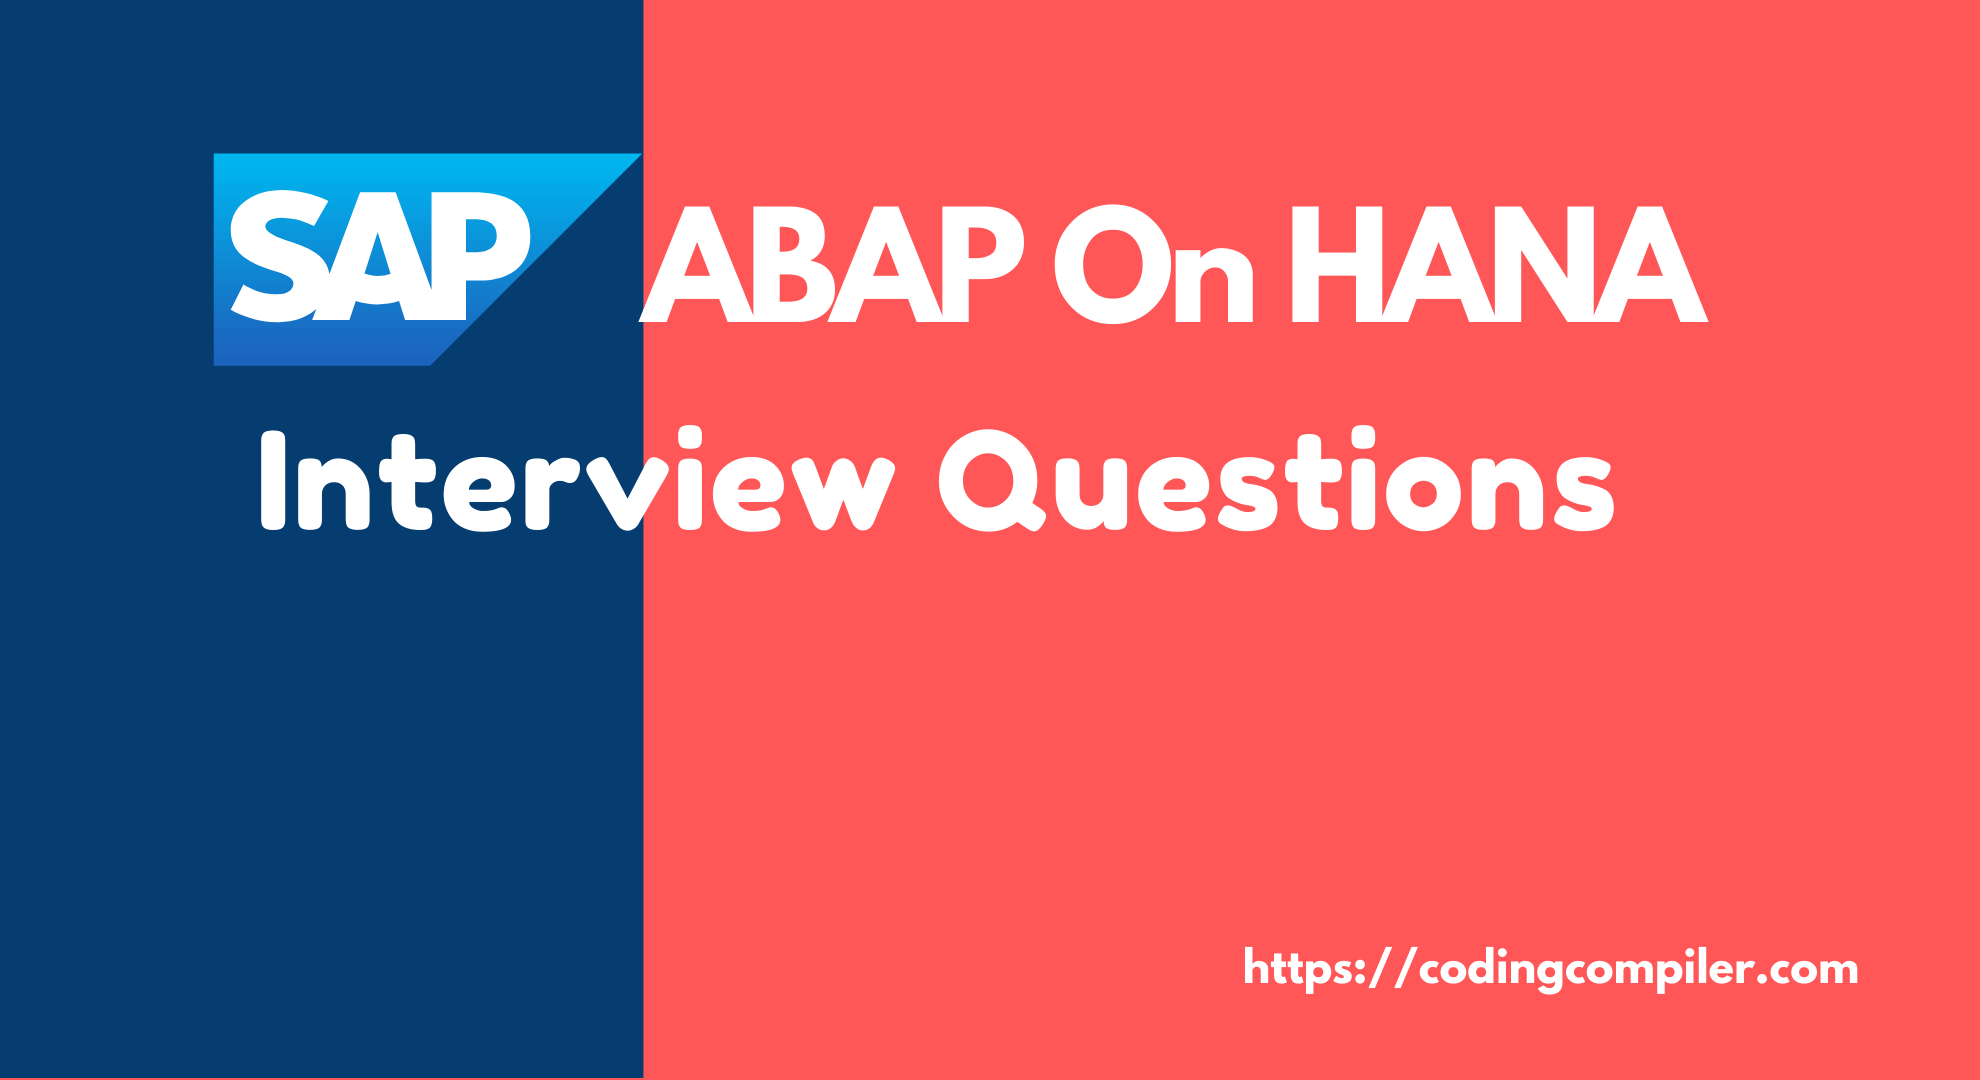 SAP ABAP on HANA Interview Questions